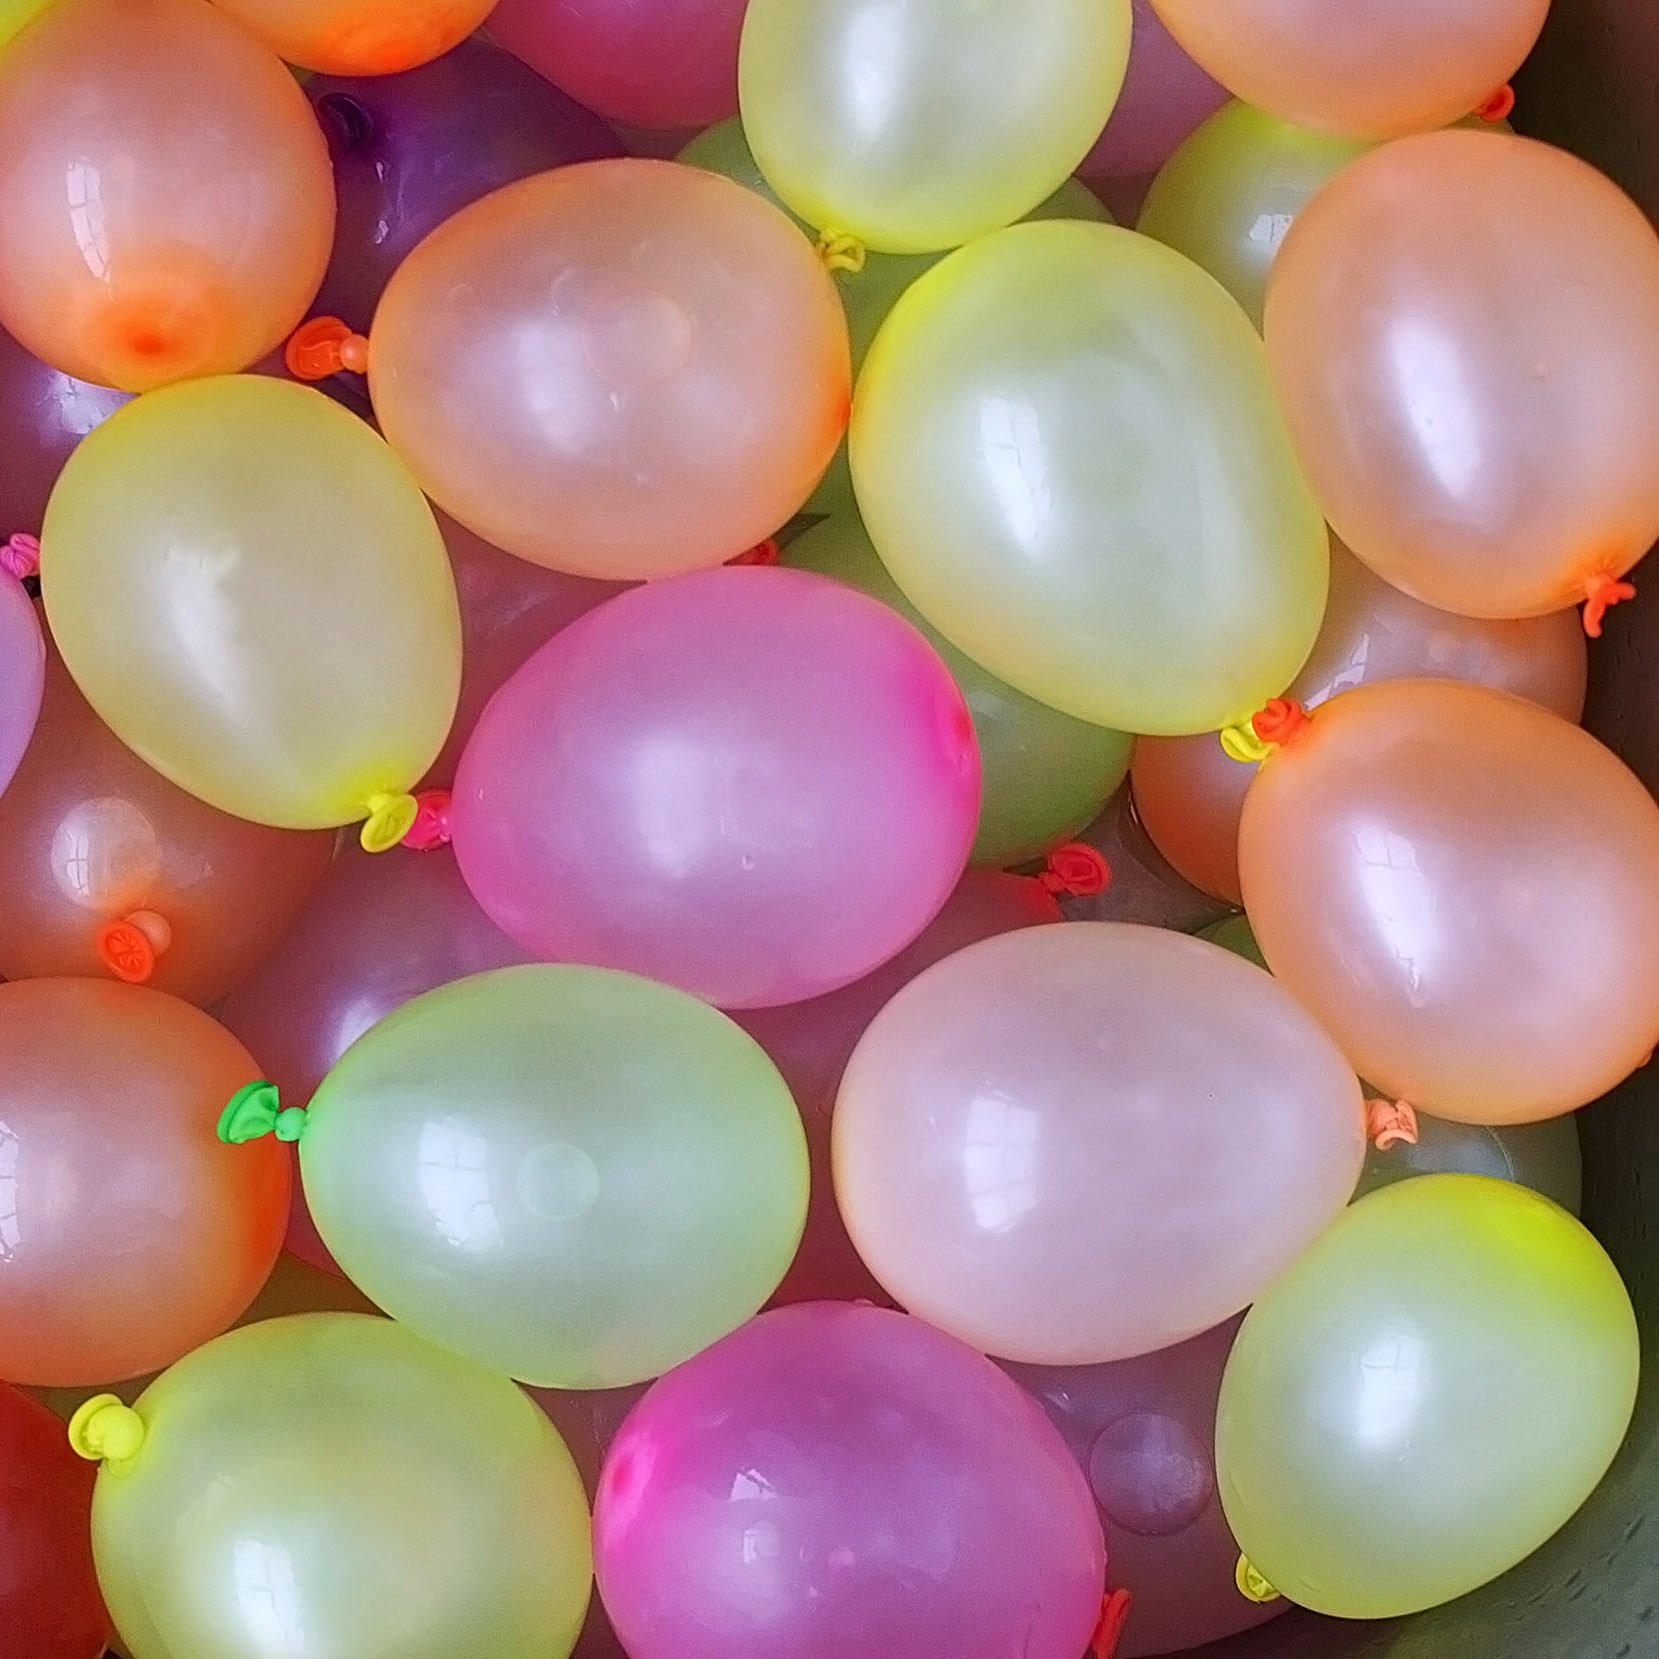 Cool & Fun {110 Count Pack} of 4'' Inch ''Standard Size'' Water Balloon Bomb Grenades Made of Latex Rubber w/ Pre Tied Cool Design {Pink, Blue, Yellow, Orange & Green Colored} w/ Nozzle Attachment by mySimple Products